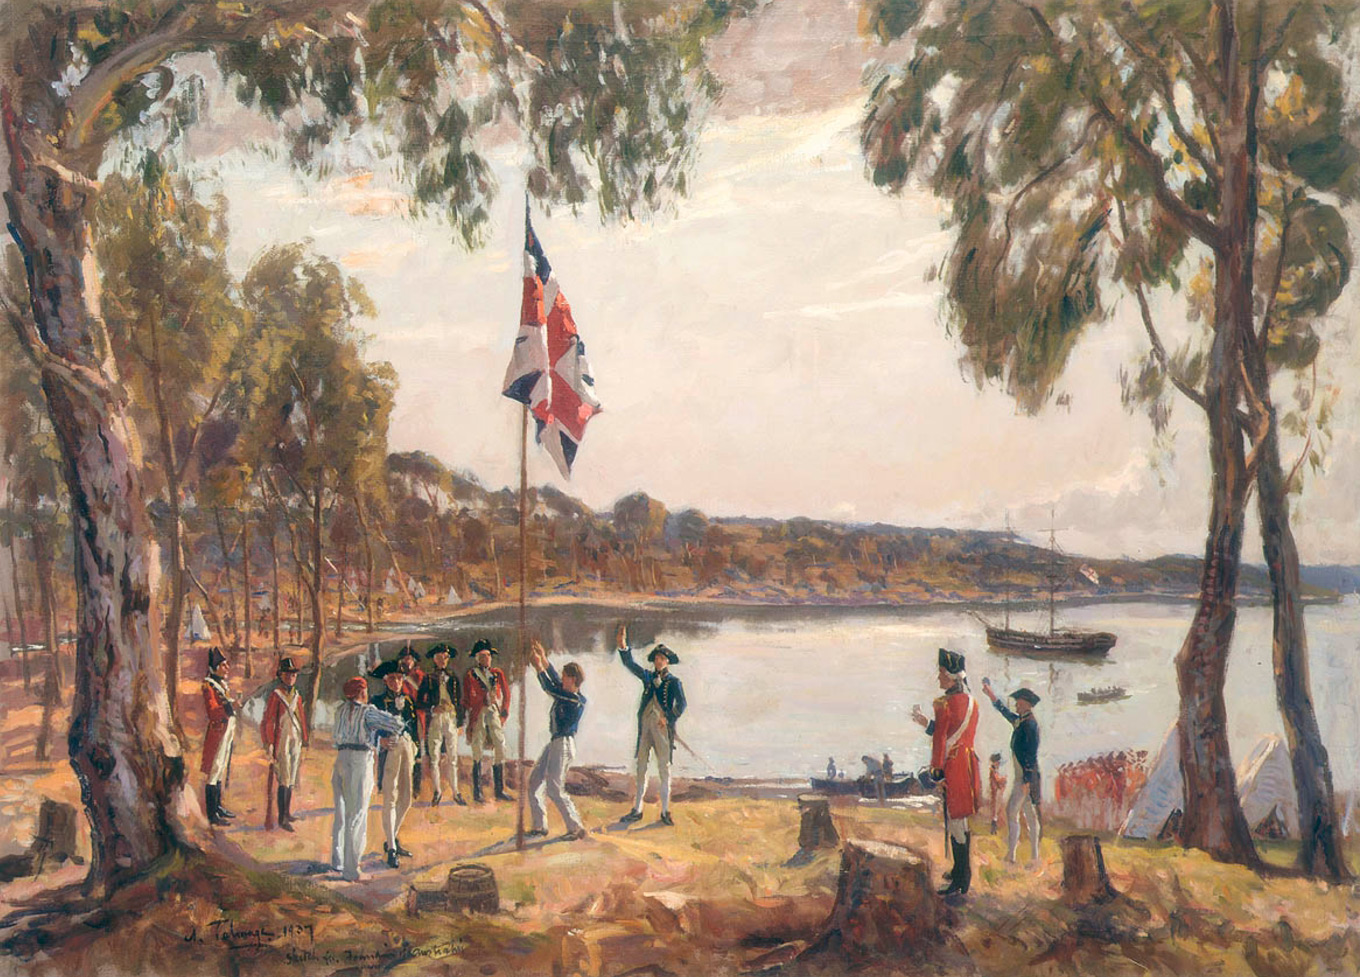 history of austrlia Short history of convict australia is the first ever documentary about australia's convict pastit visits the locations where convicts lived and worked, talks to historians and descendants of convicts and experiences the legacy of the dramatic, brutal birth of a nation.